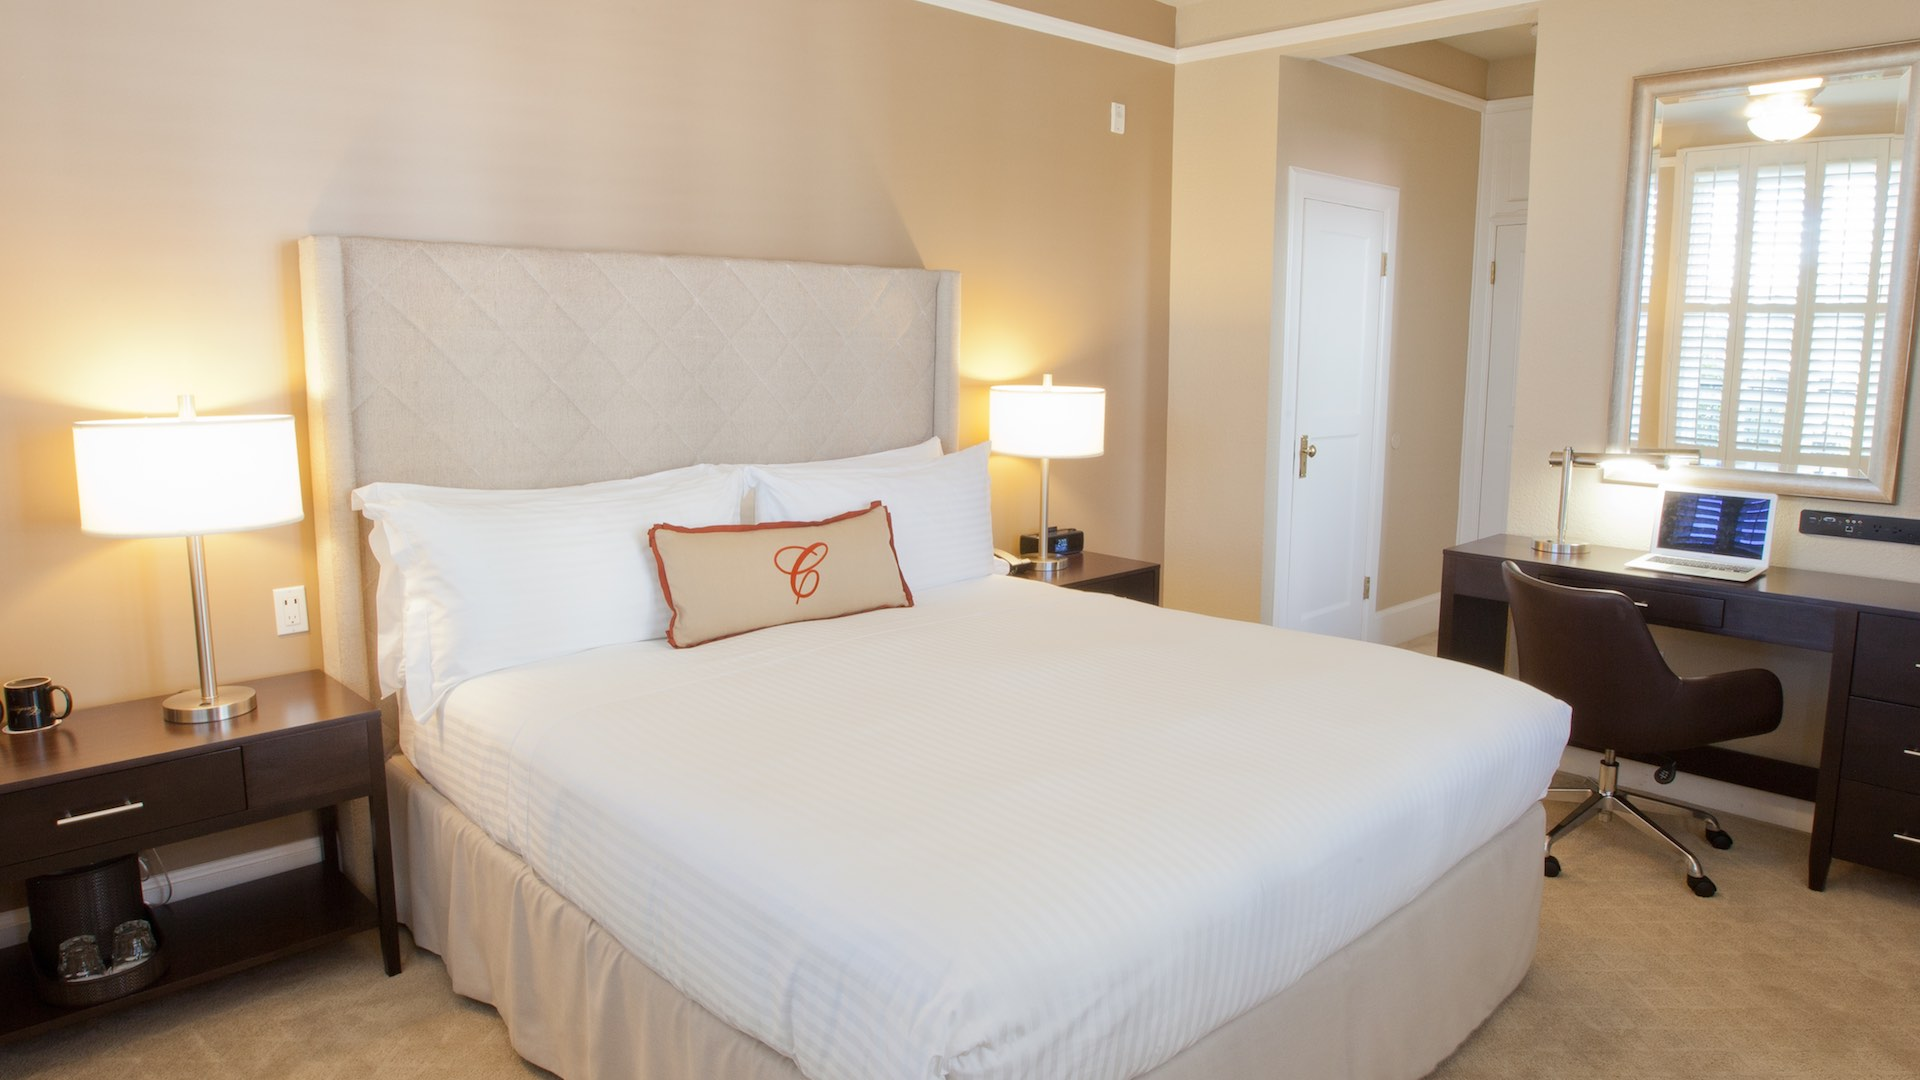 Cardinal Hotel Deluxe Style guest room